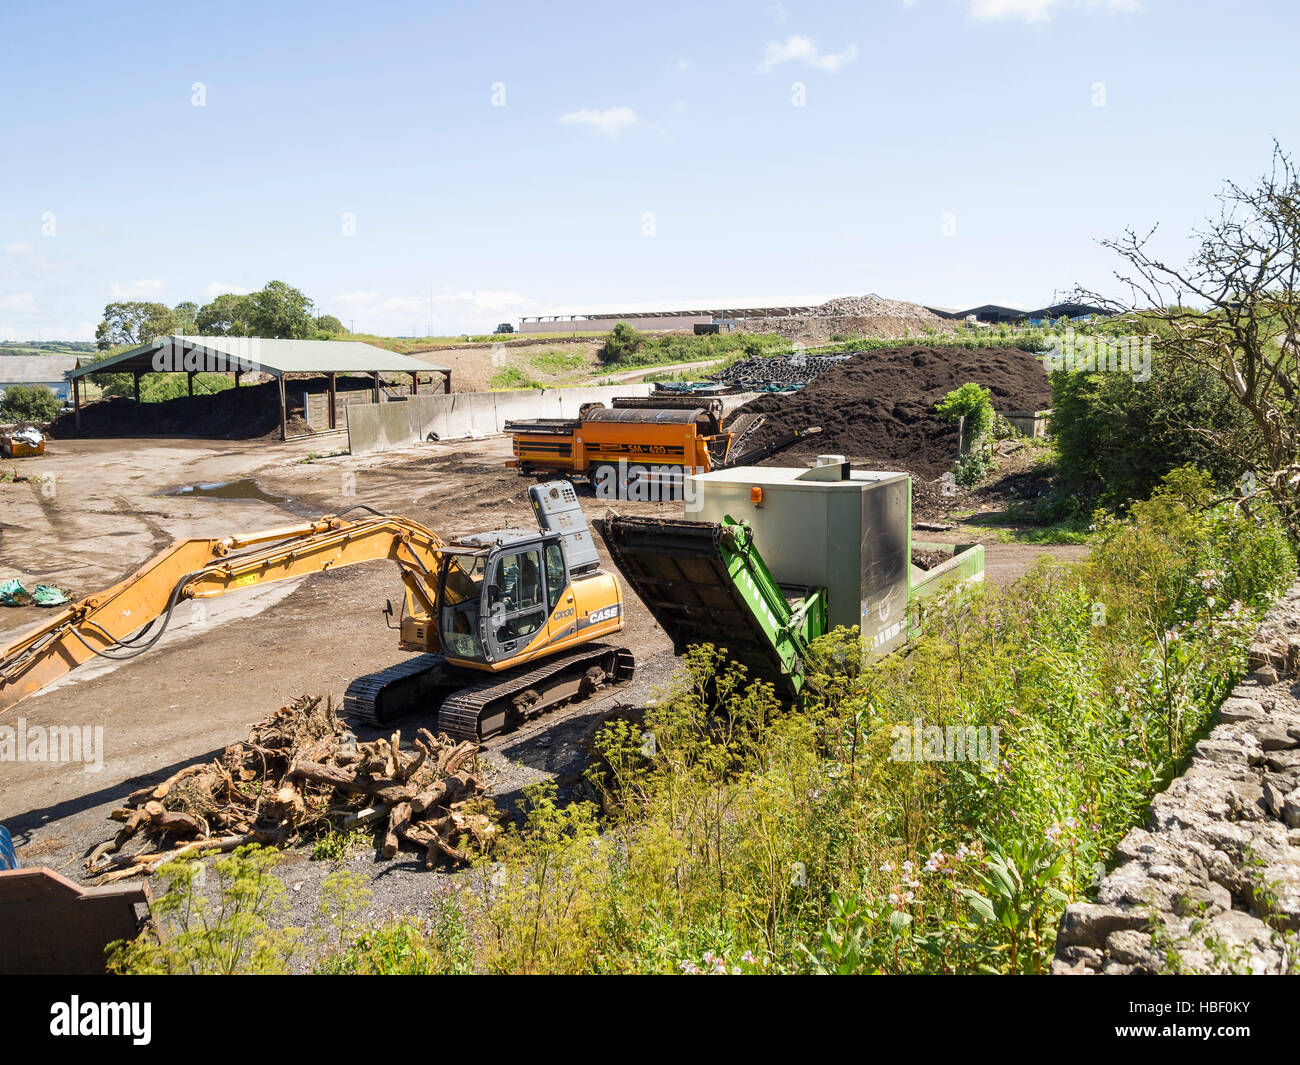 outdoor biomass recycling facility with machines - Stock Image